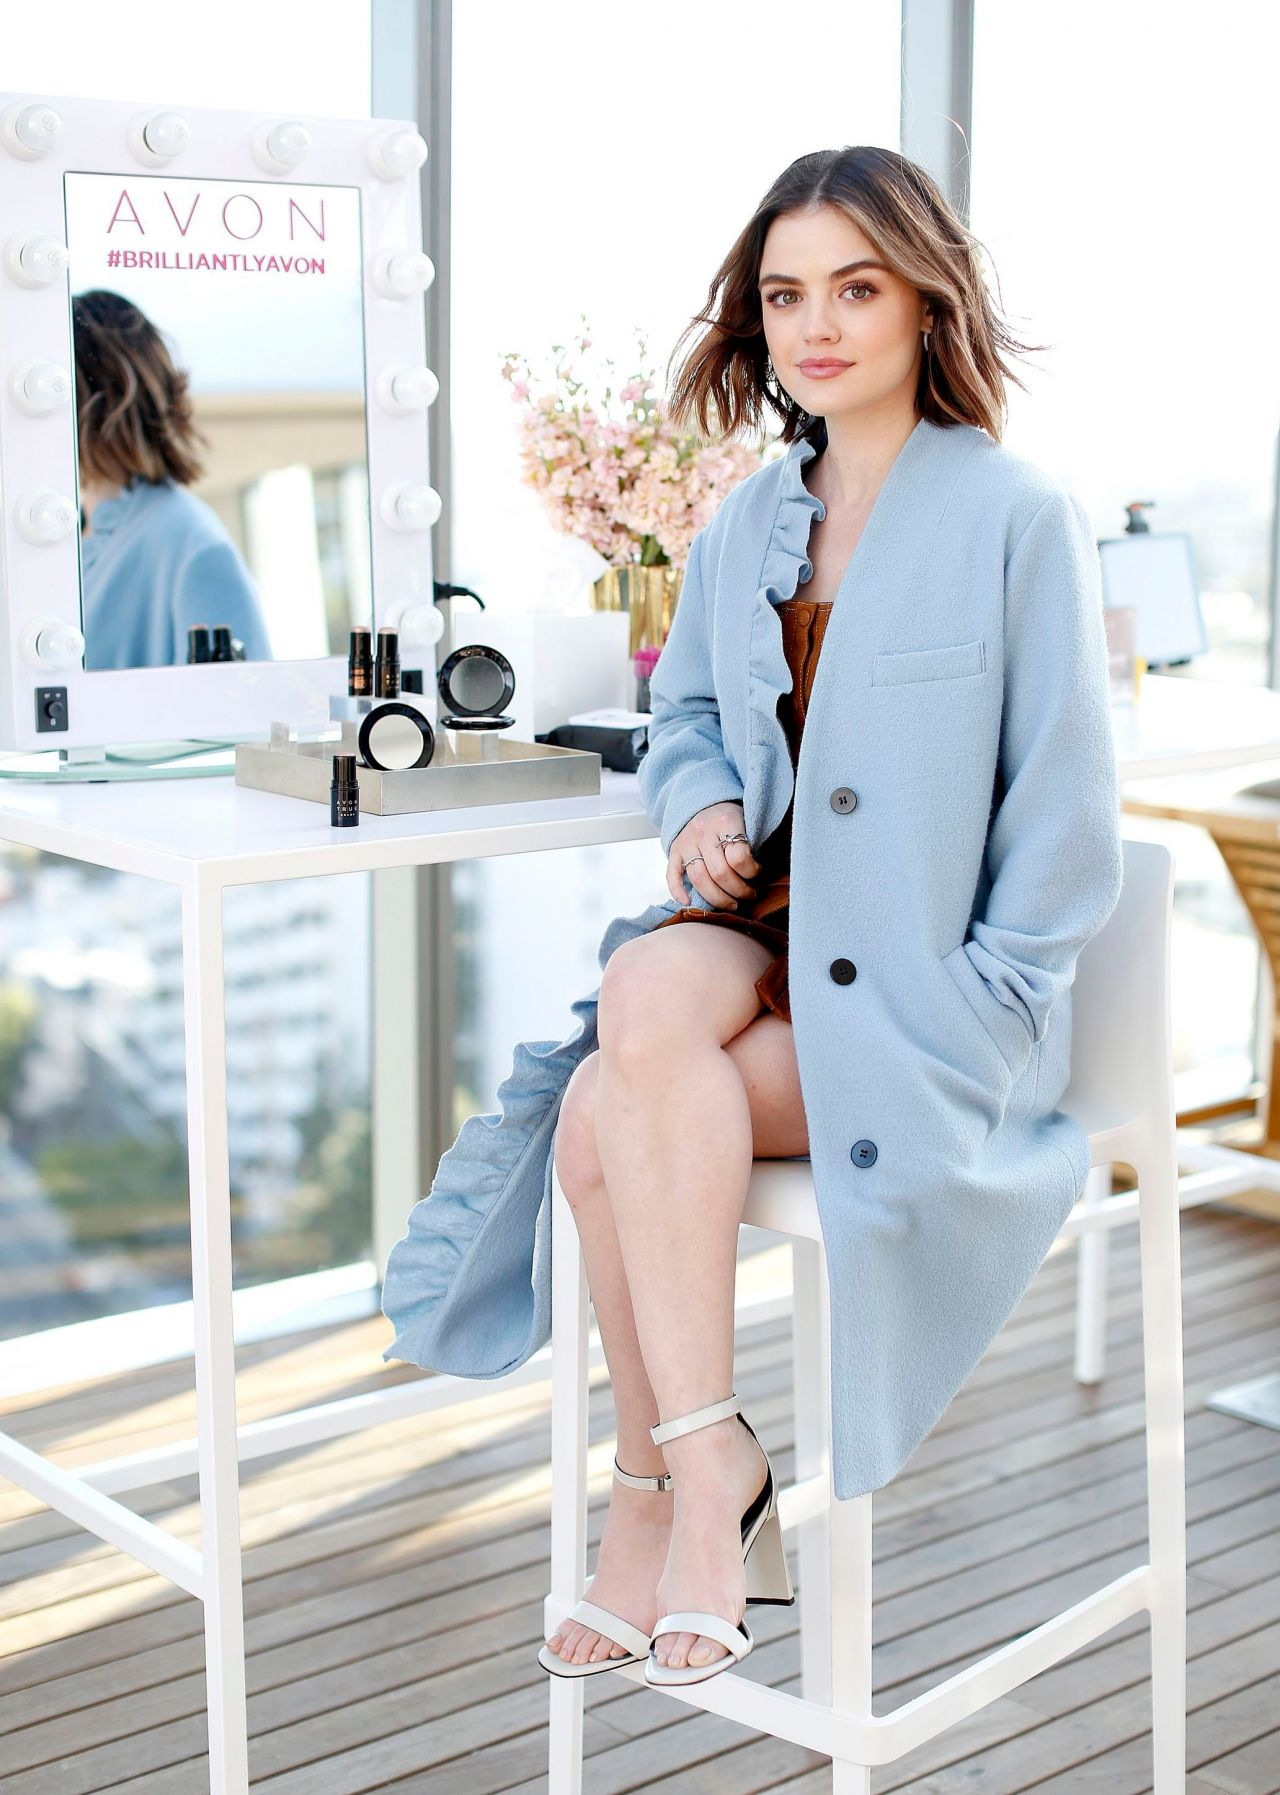 http://celebmafia.com/wp-content/uploads/2018/02/lucy-hale-avon-new-glow-collection-launch-in-la-4.jpg